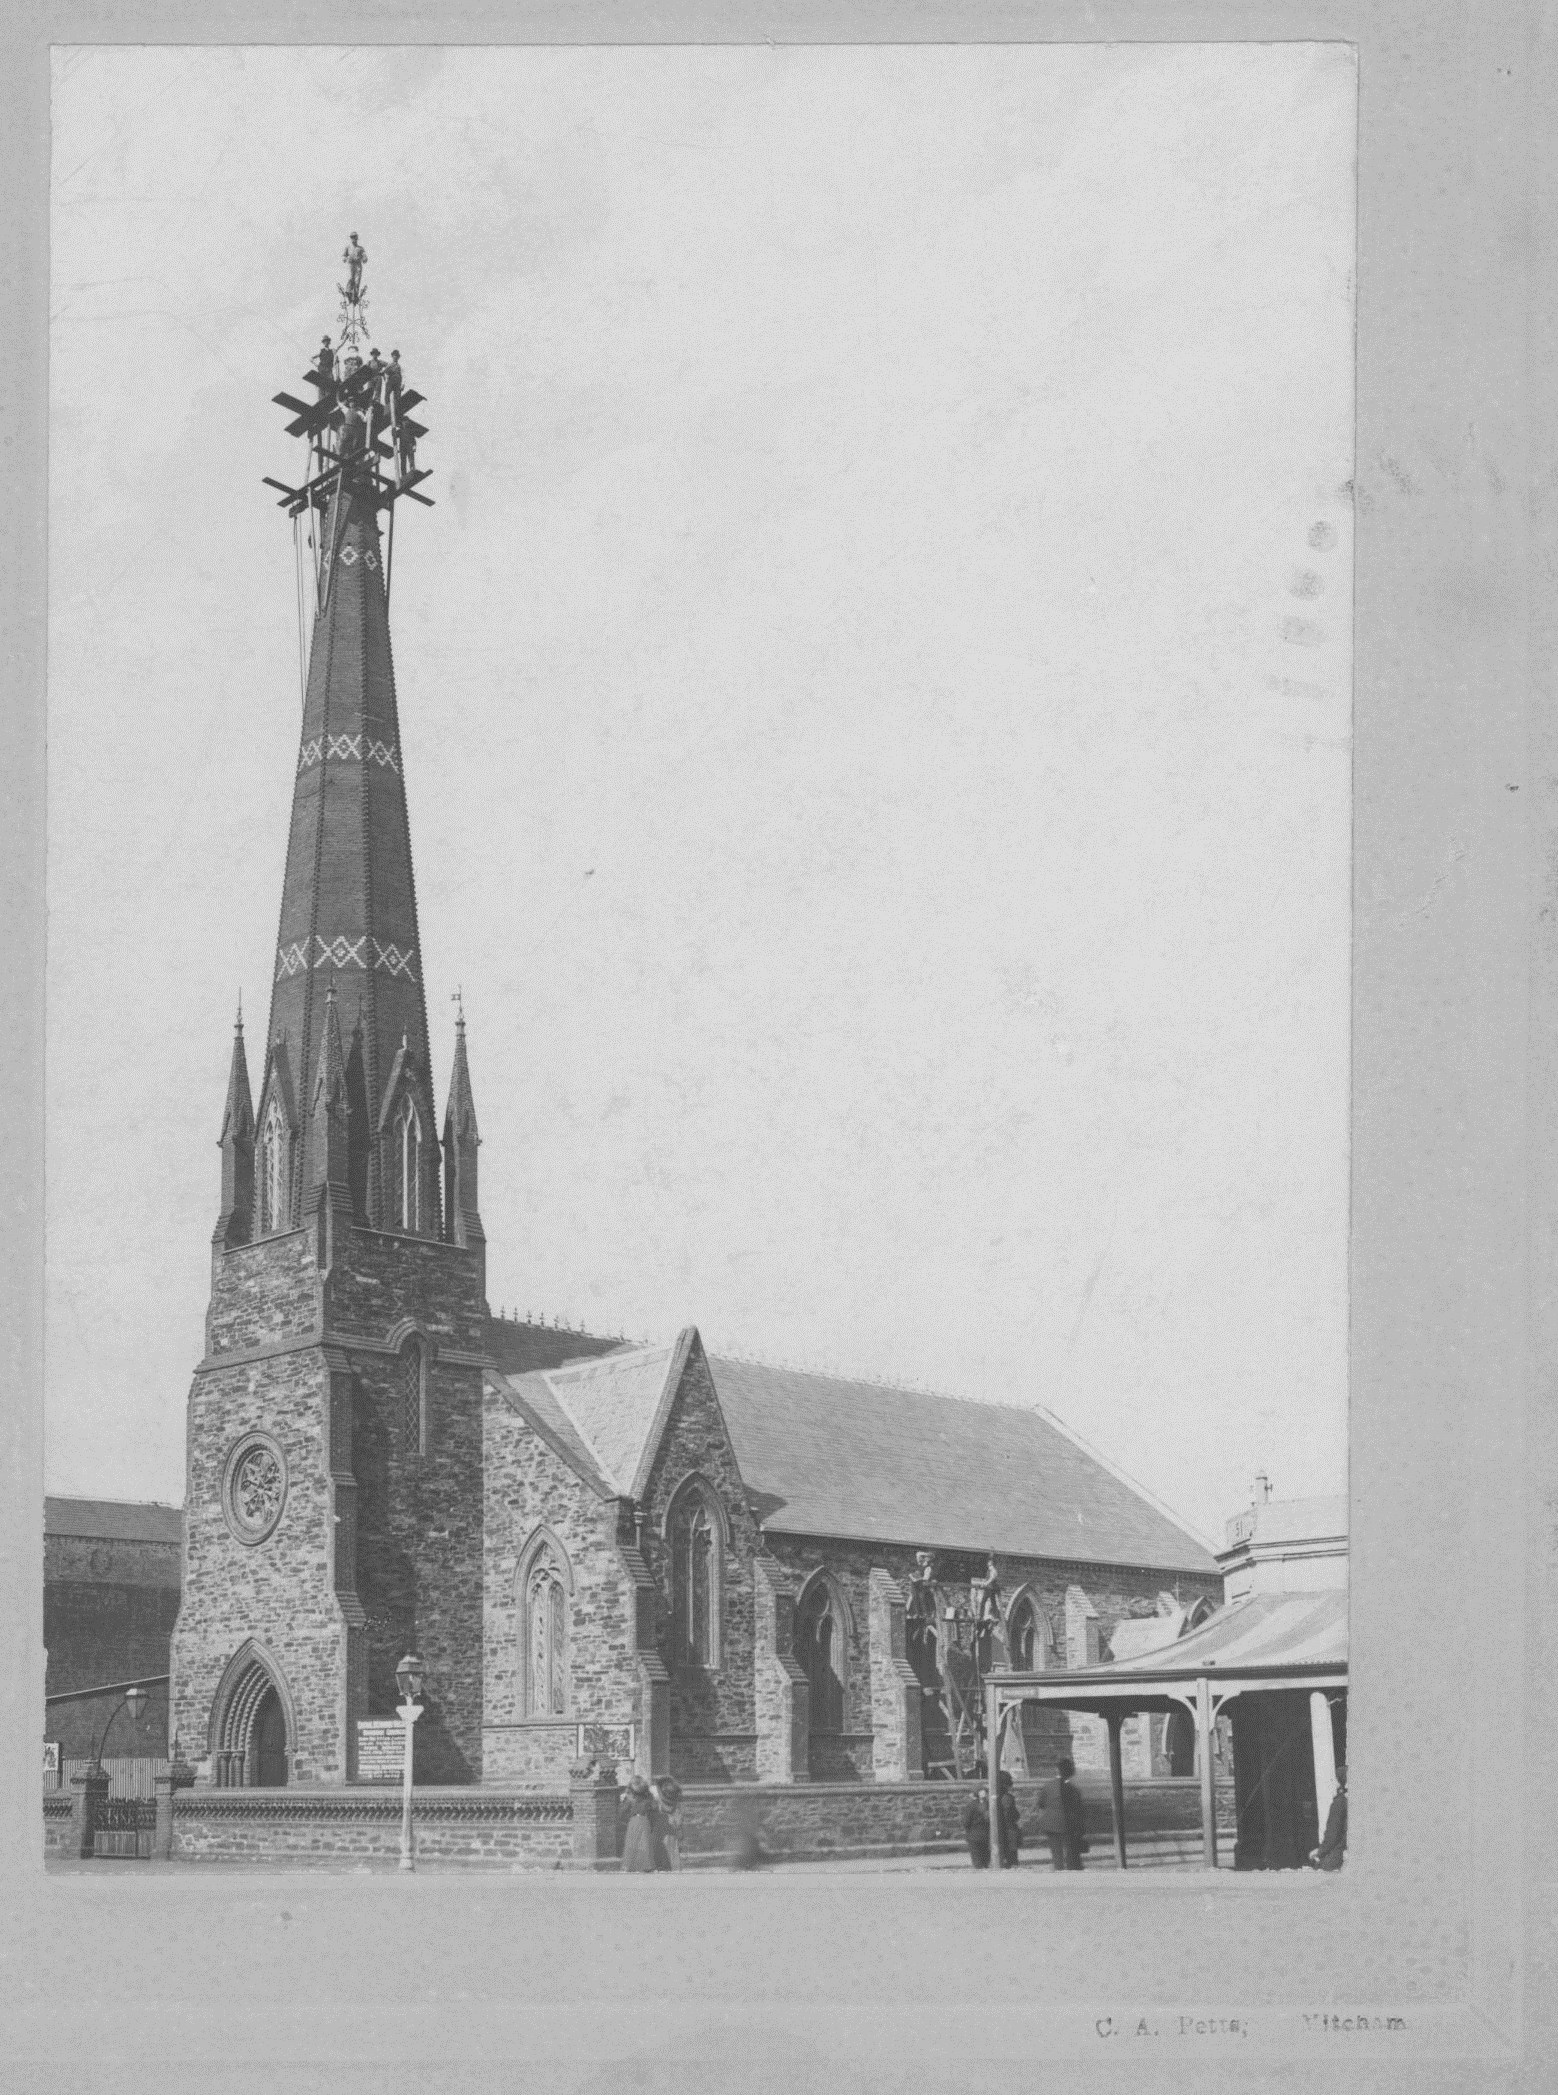 MaughanChurchCompletingSpire1870 (2)